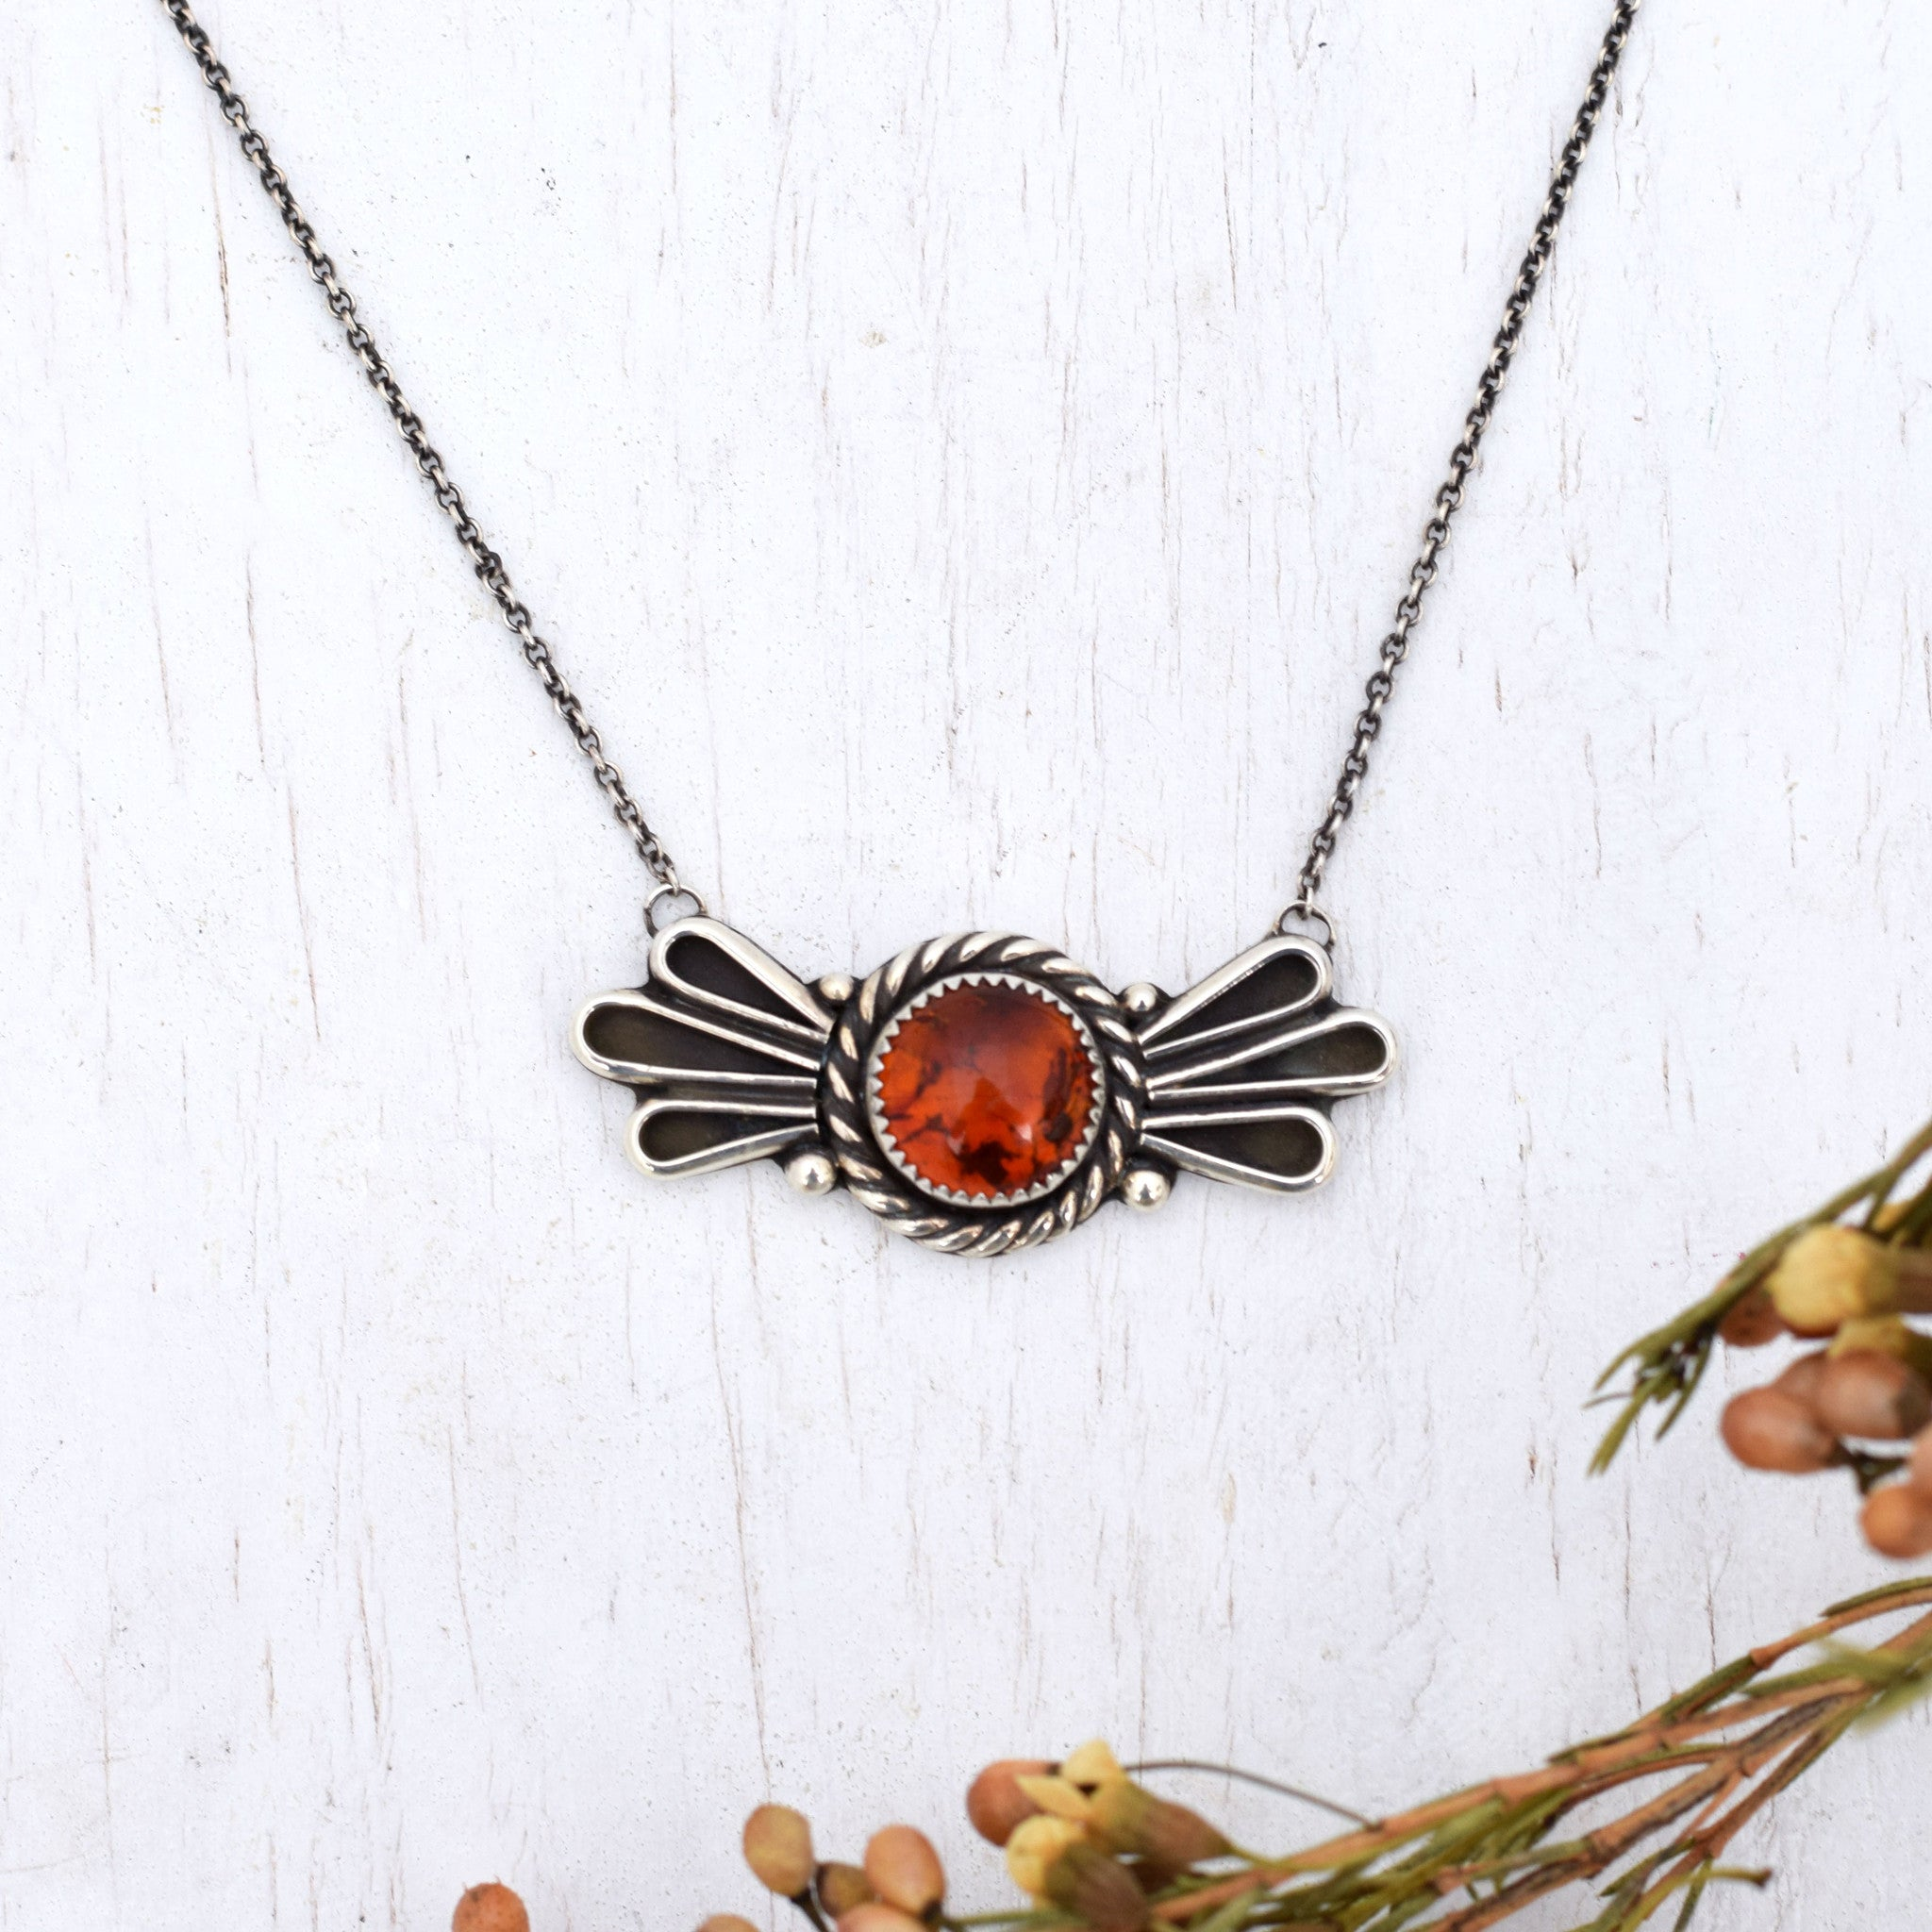 Amber Winged Necklace